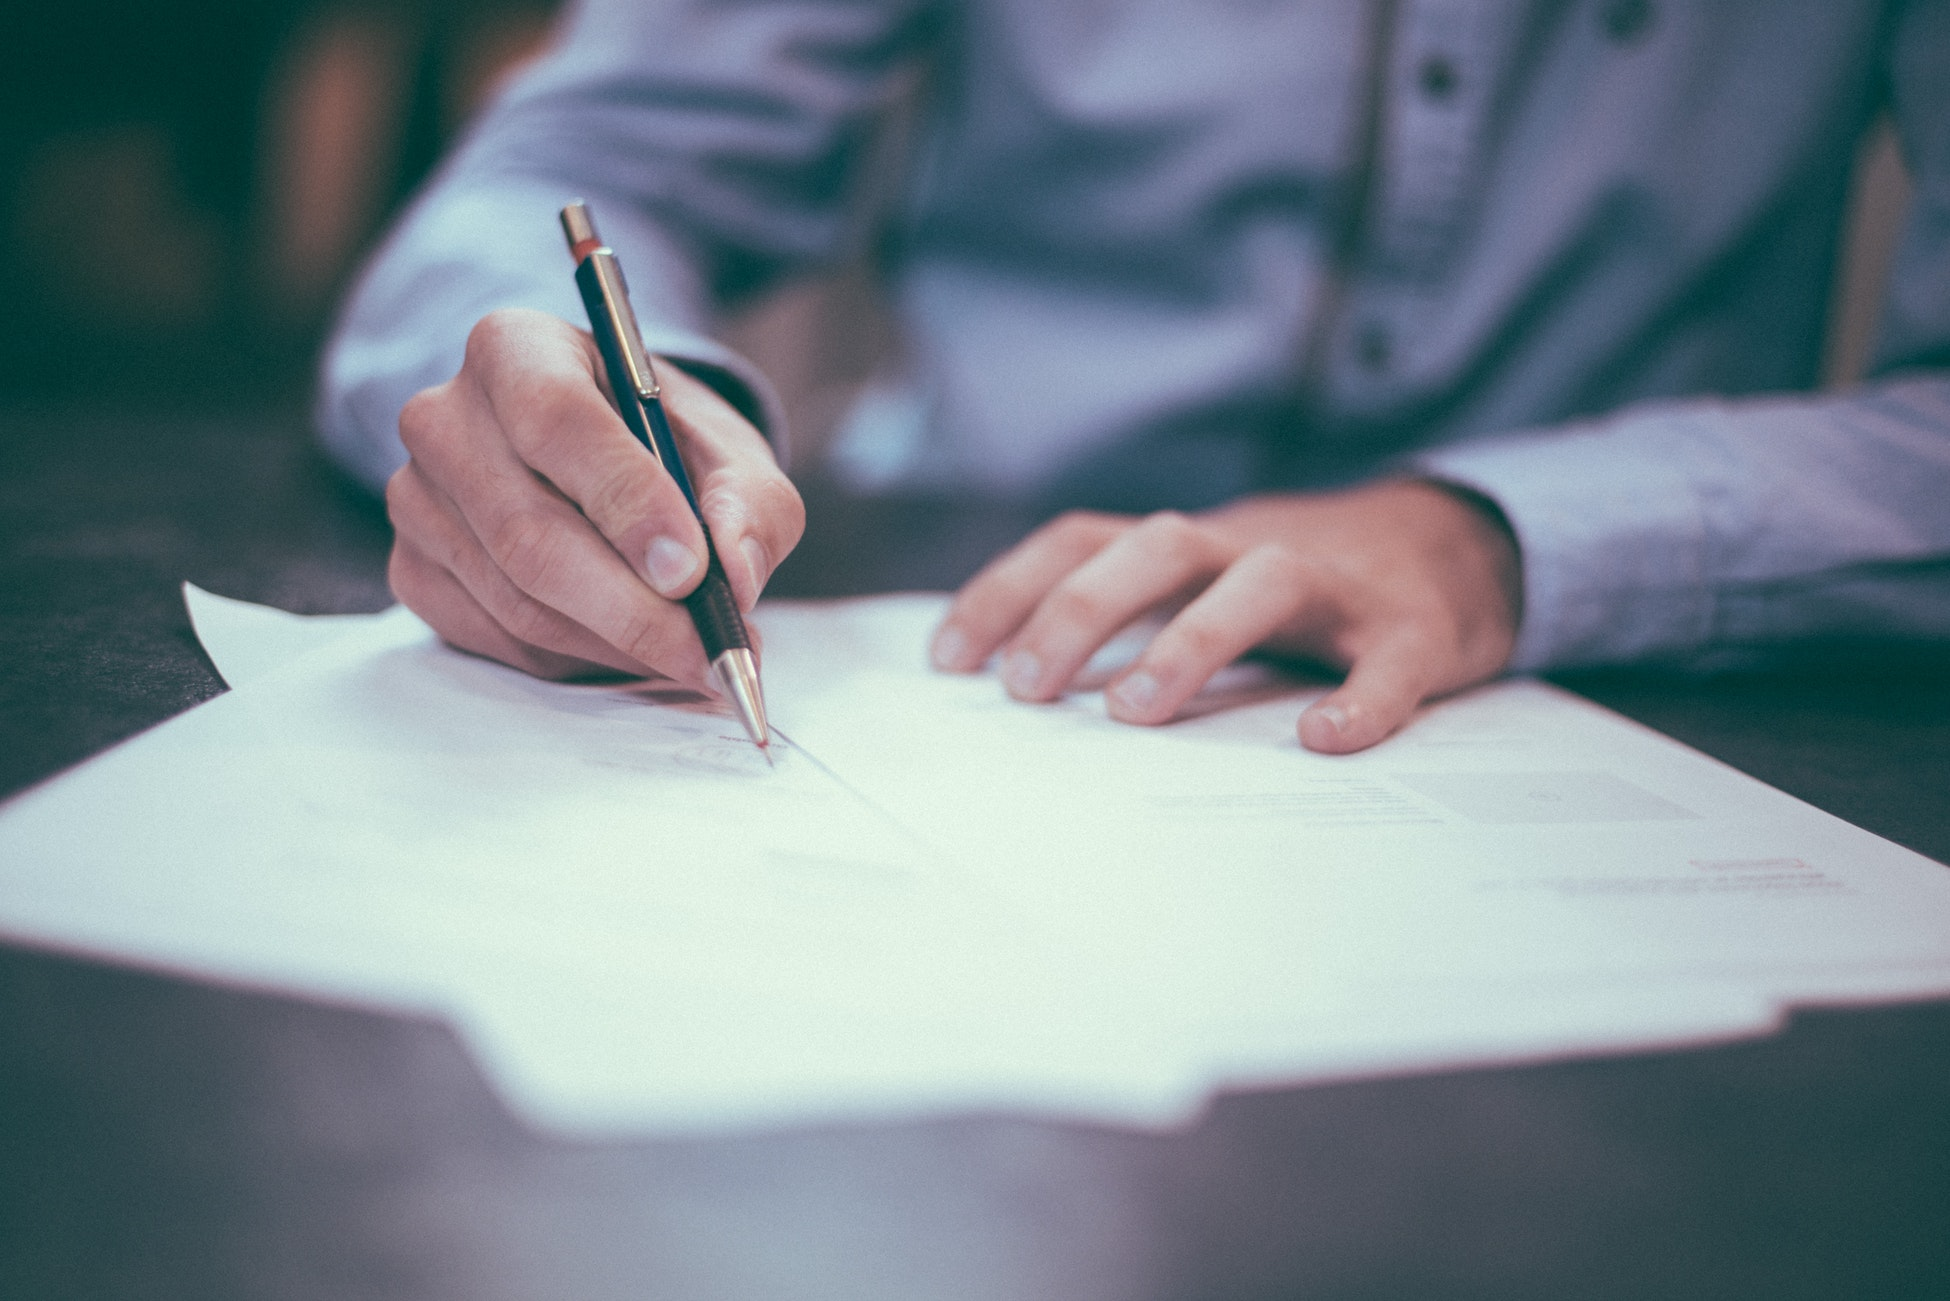 USCIS Rejects Petitions without NOID or RFE